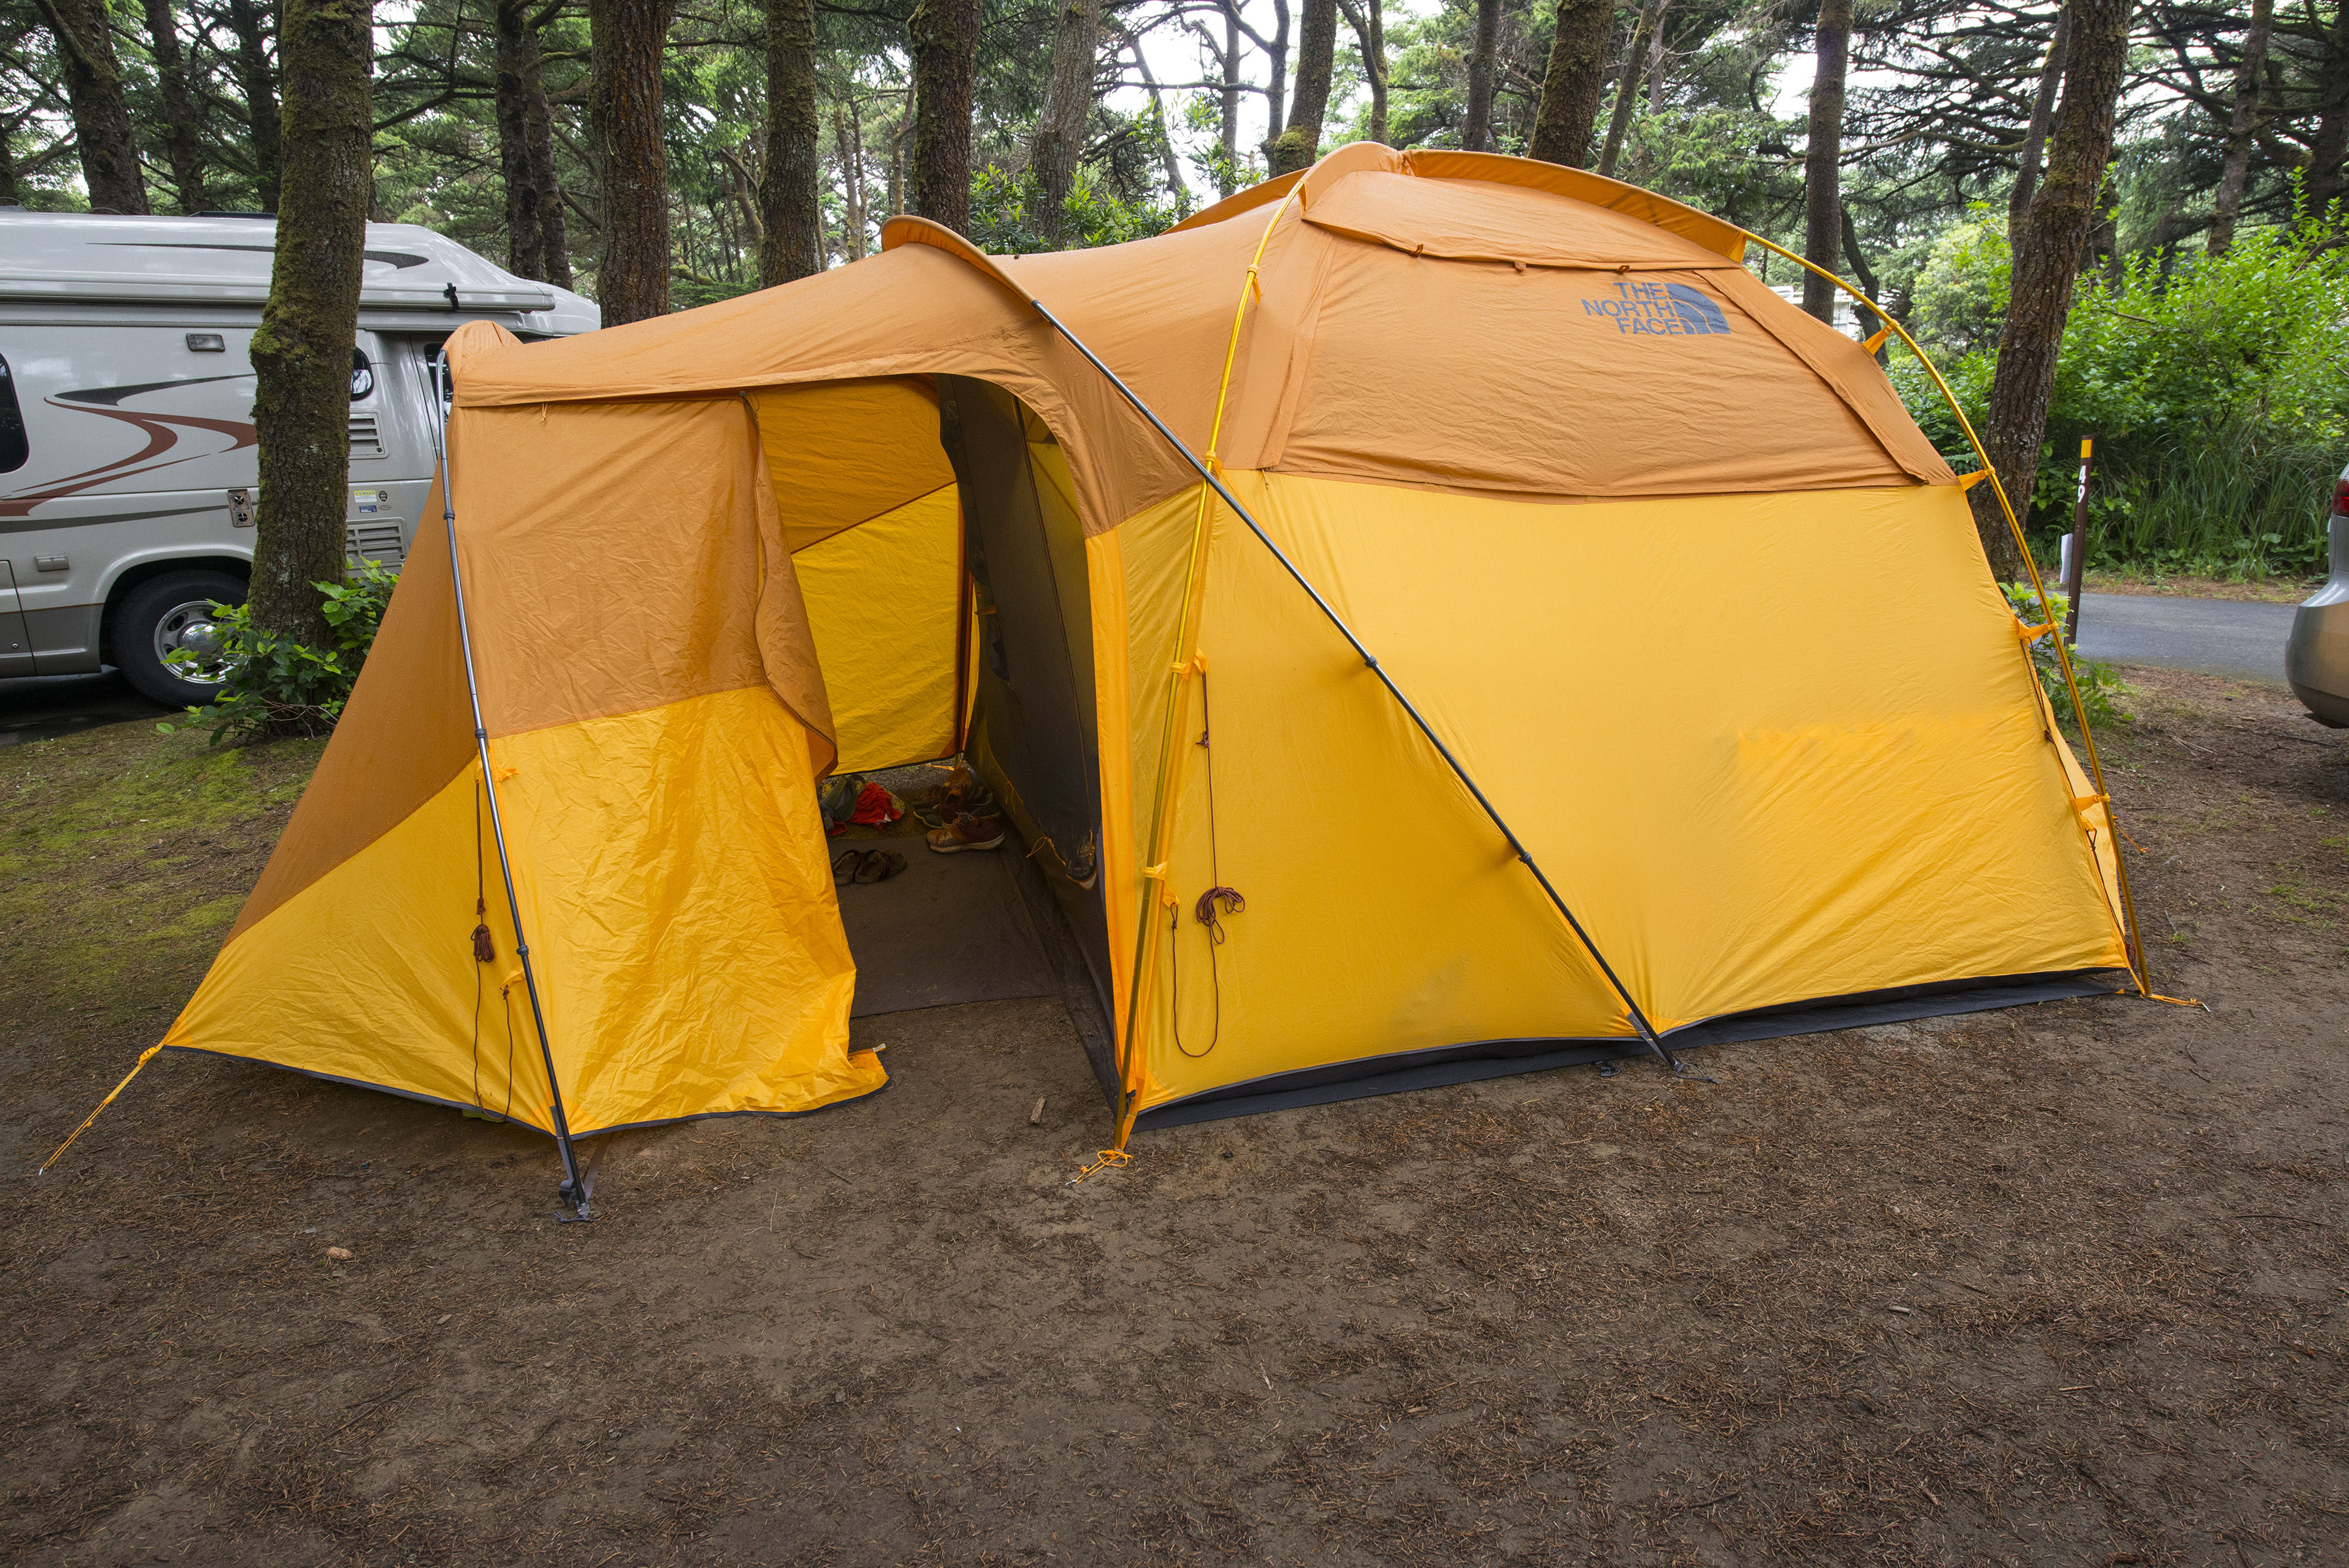 The North Face Wawona 6 Family Tent. Photo by Tyson Gillard. & Gear Review: The North Face Wawona 6 Tent - Outdoor Project